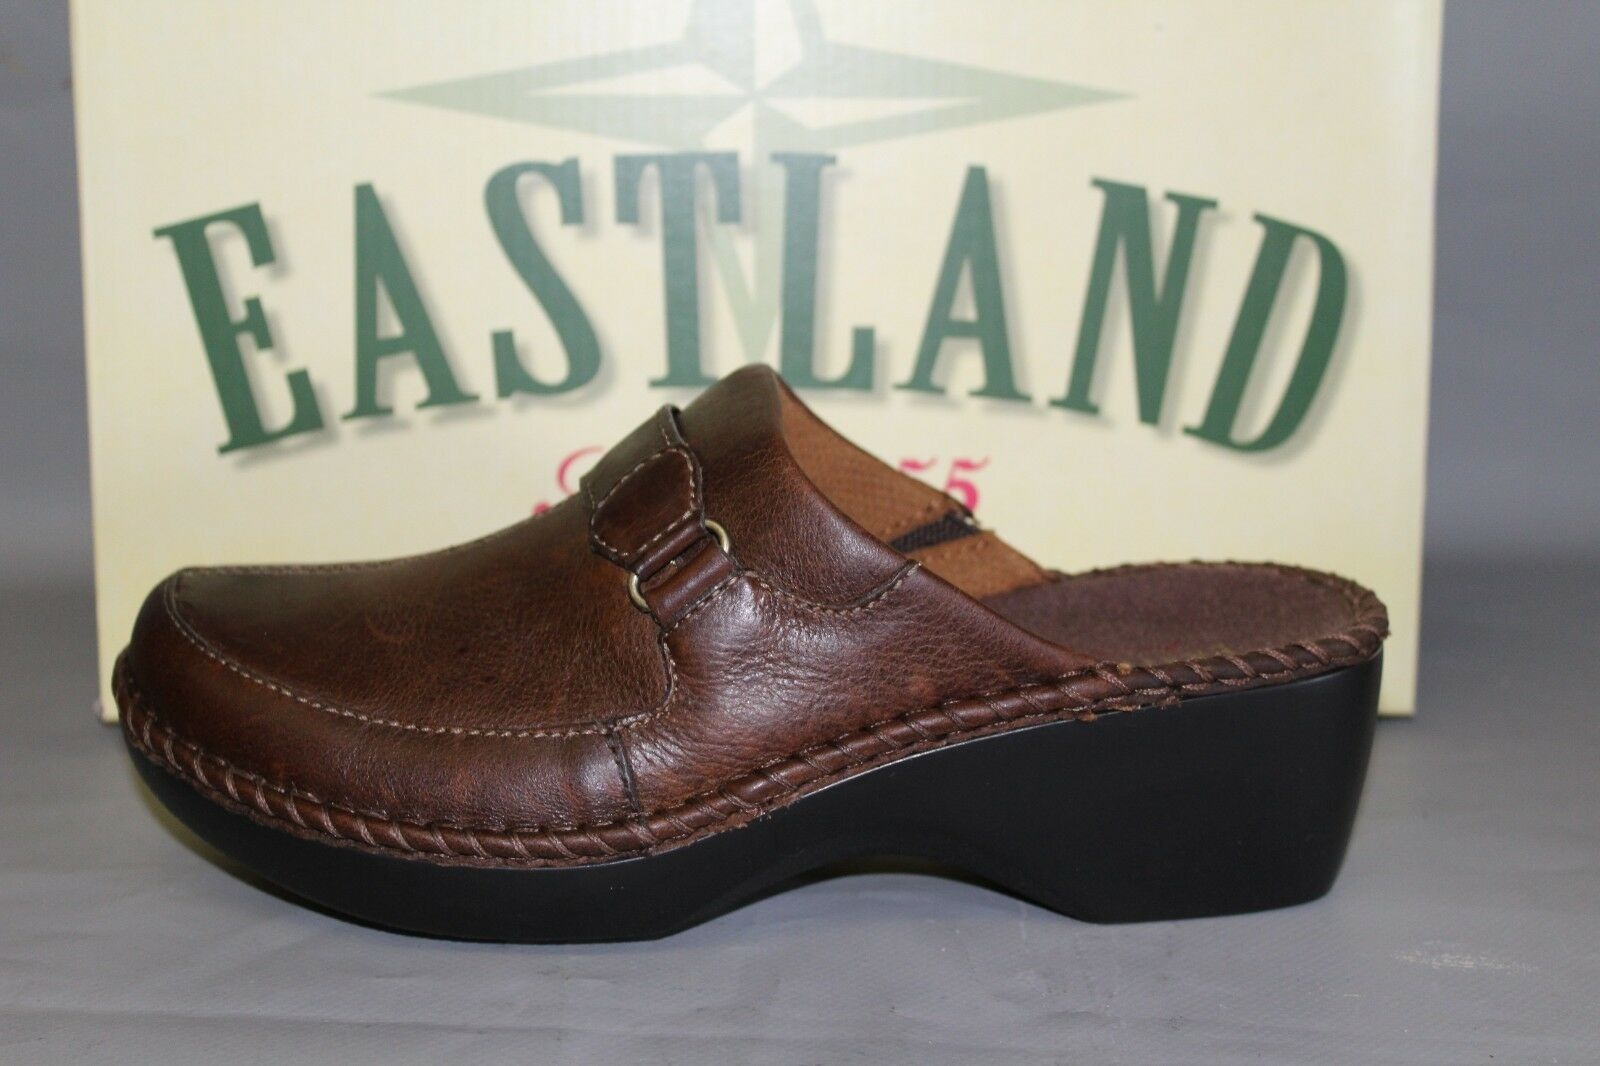 NEW Women's Eastland York Sz 7.5 Wide Brown Leather Comfortable Supportive Clogs